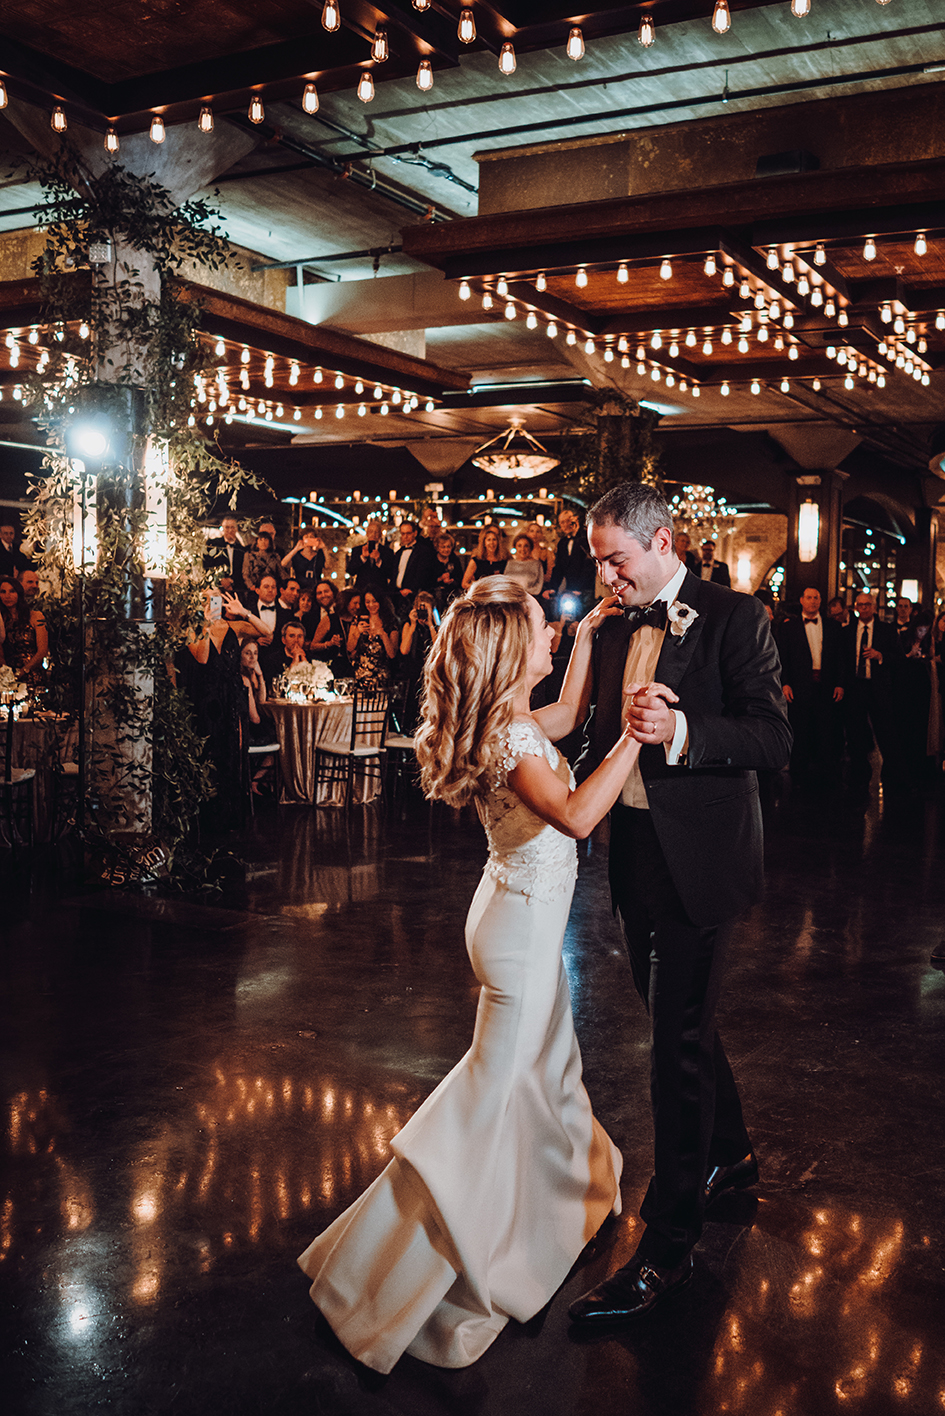 Houston Wedding, First Dance, Bride, Groom, The Astorian